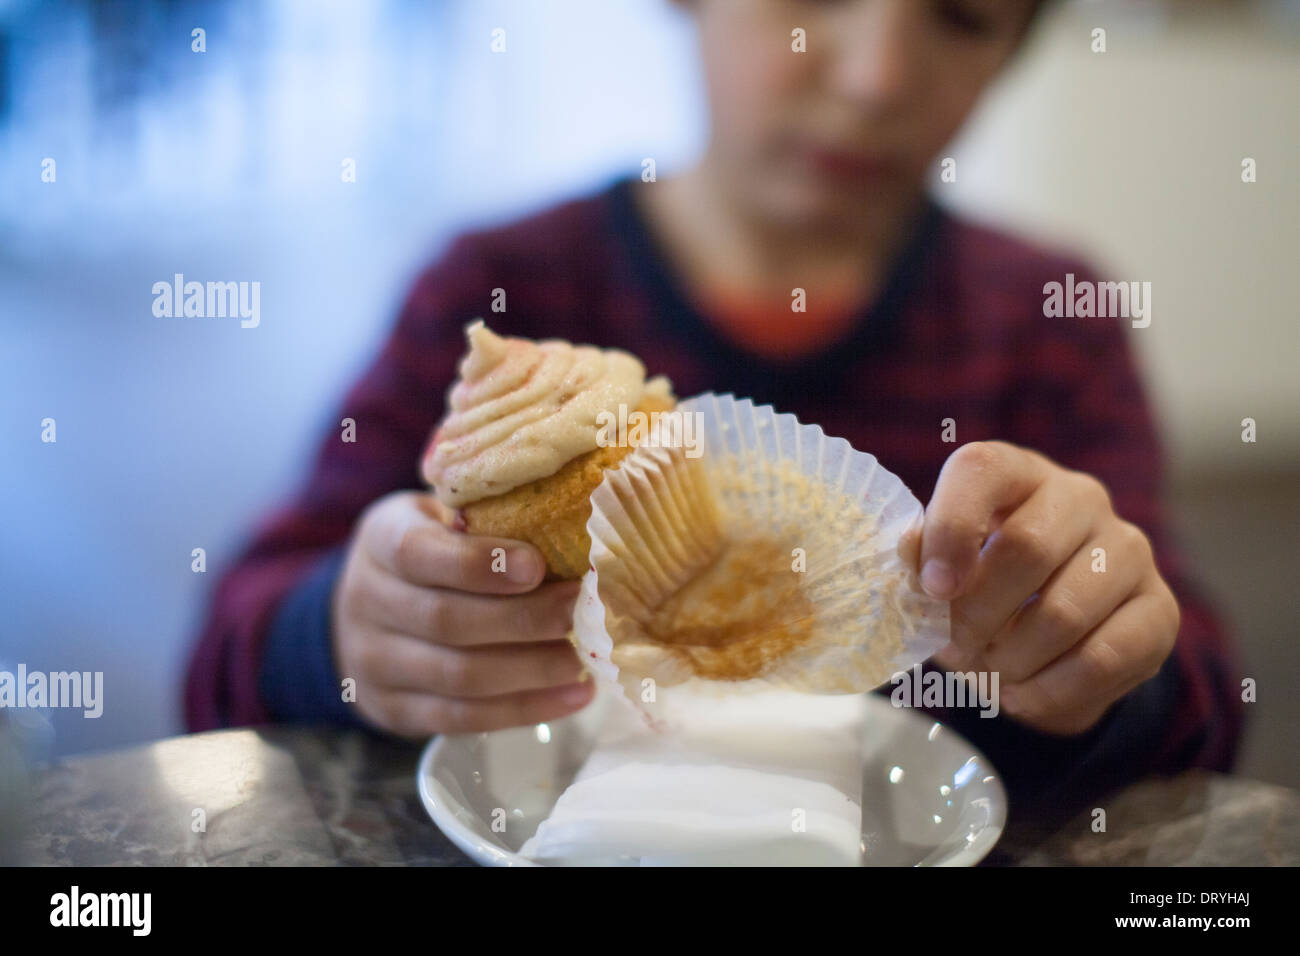 Child eating cupcake - Stock Image